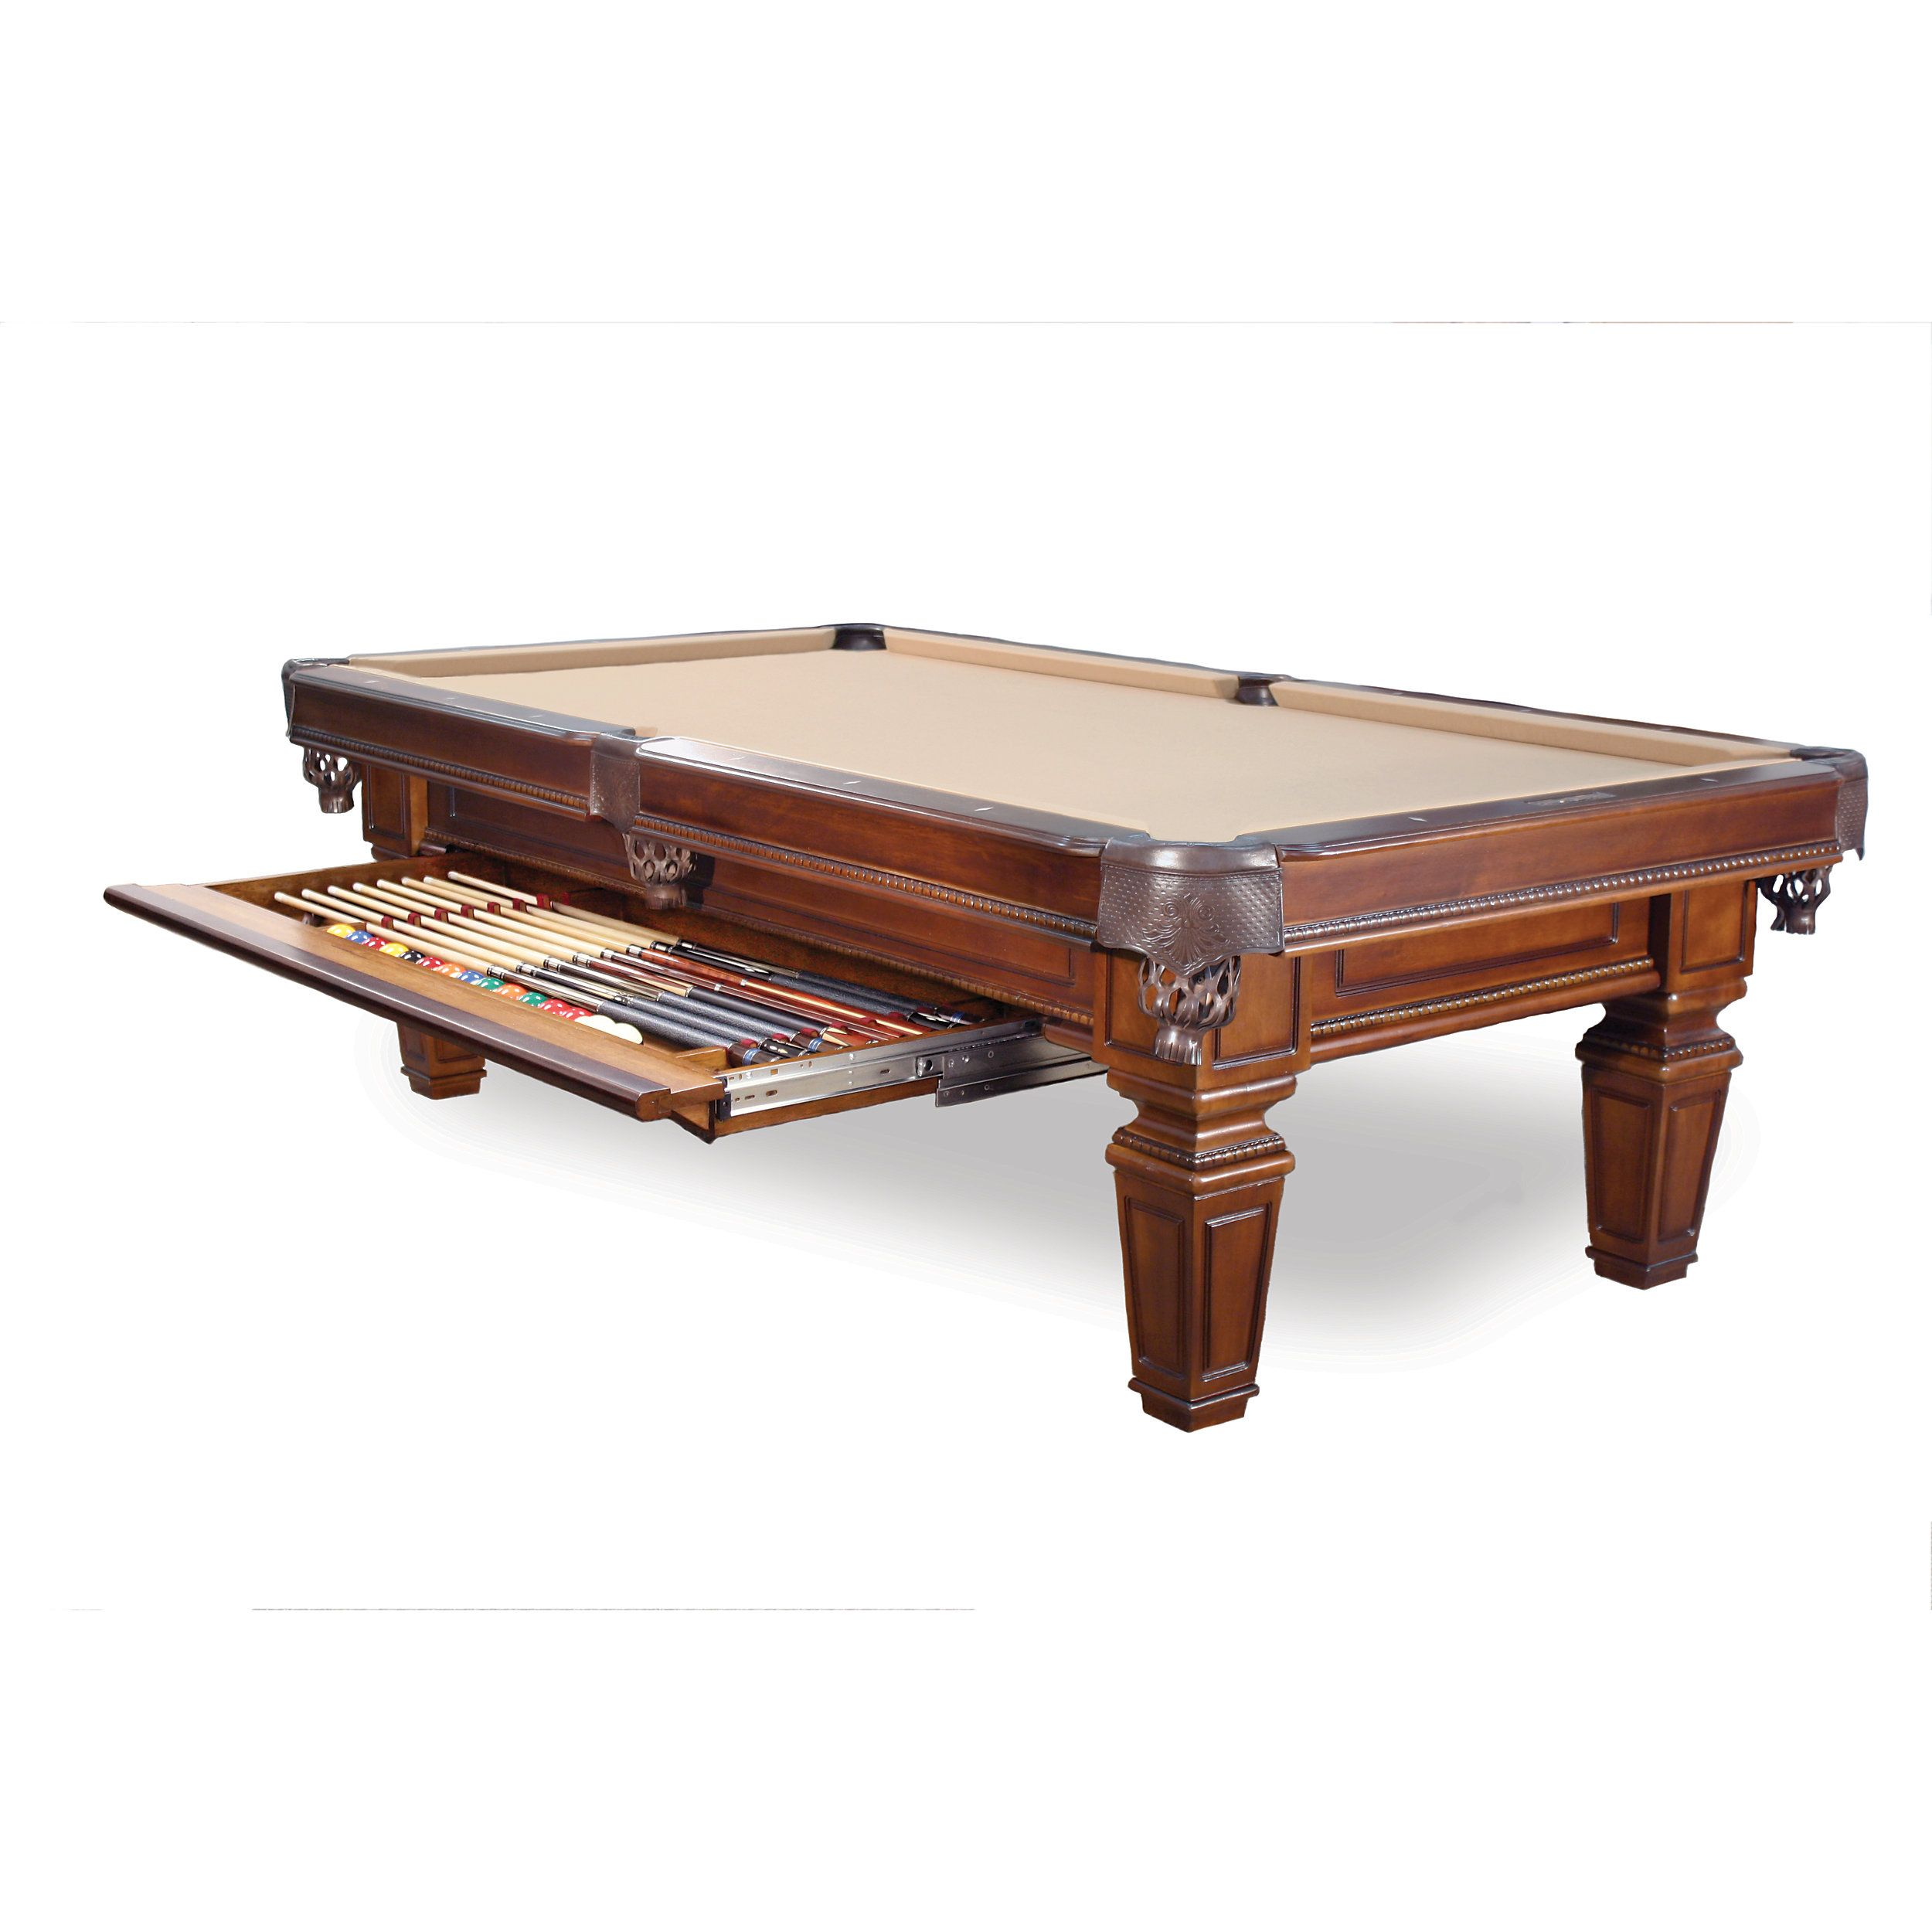 image solid products close of on game shuffleboard table billiards img outdoors inc all up r playing randroutdoors tables weather outdoor surface rock